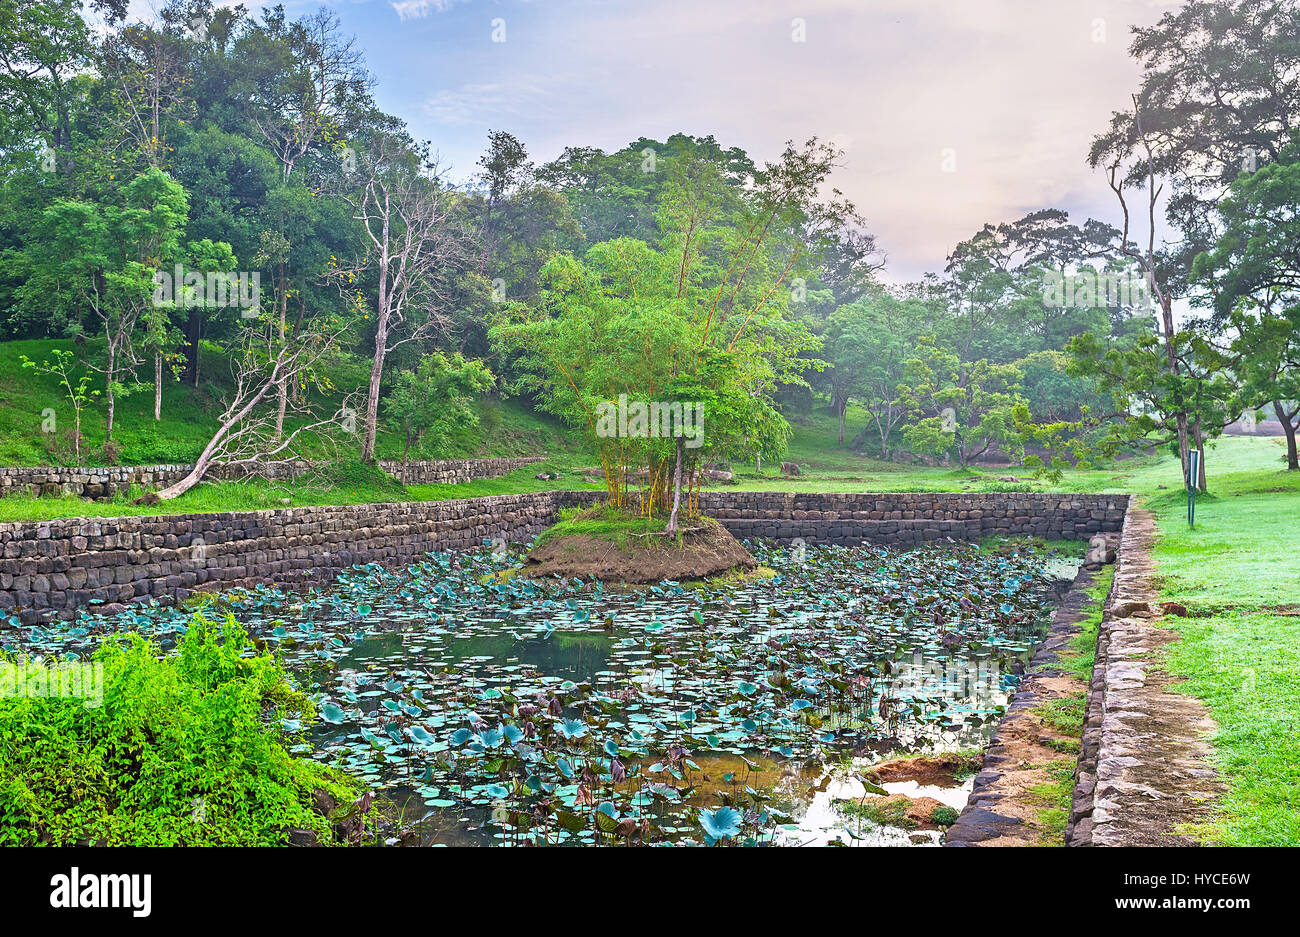 The old moat in Sigiriya, covered with lotus flowers, includes the small islet with greenery, Sri Lanka. Stock Photo